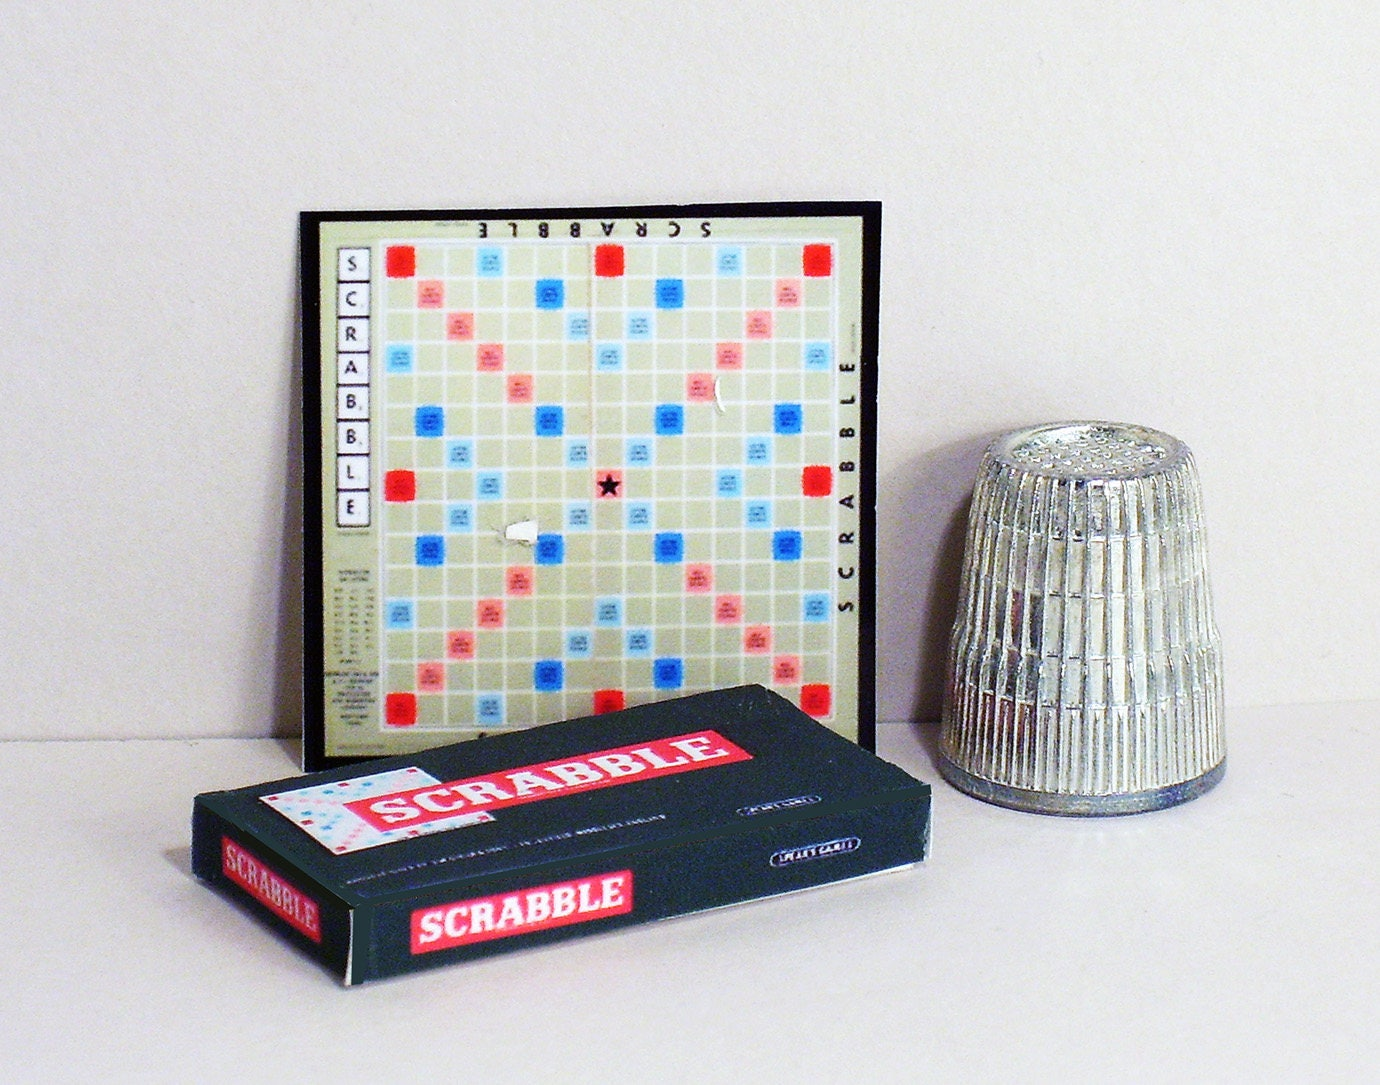 1//2 Half Inch Scale Dollhouse Miniature SCRABBLE Game Box